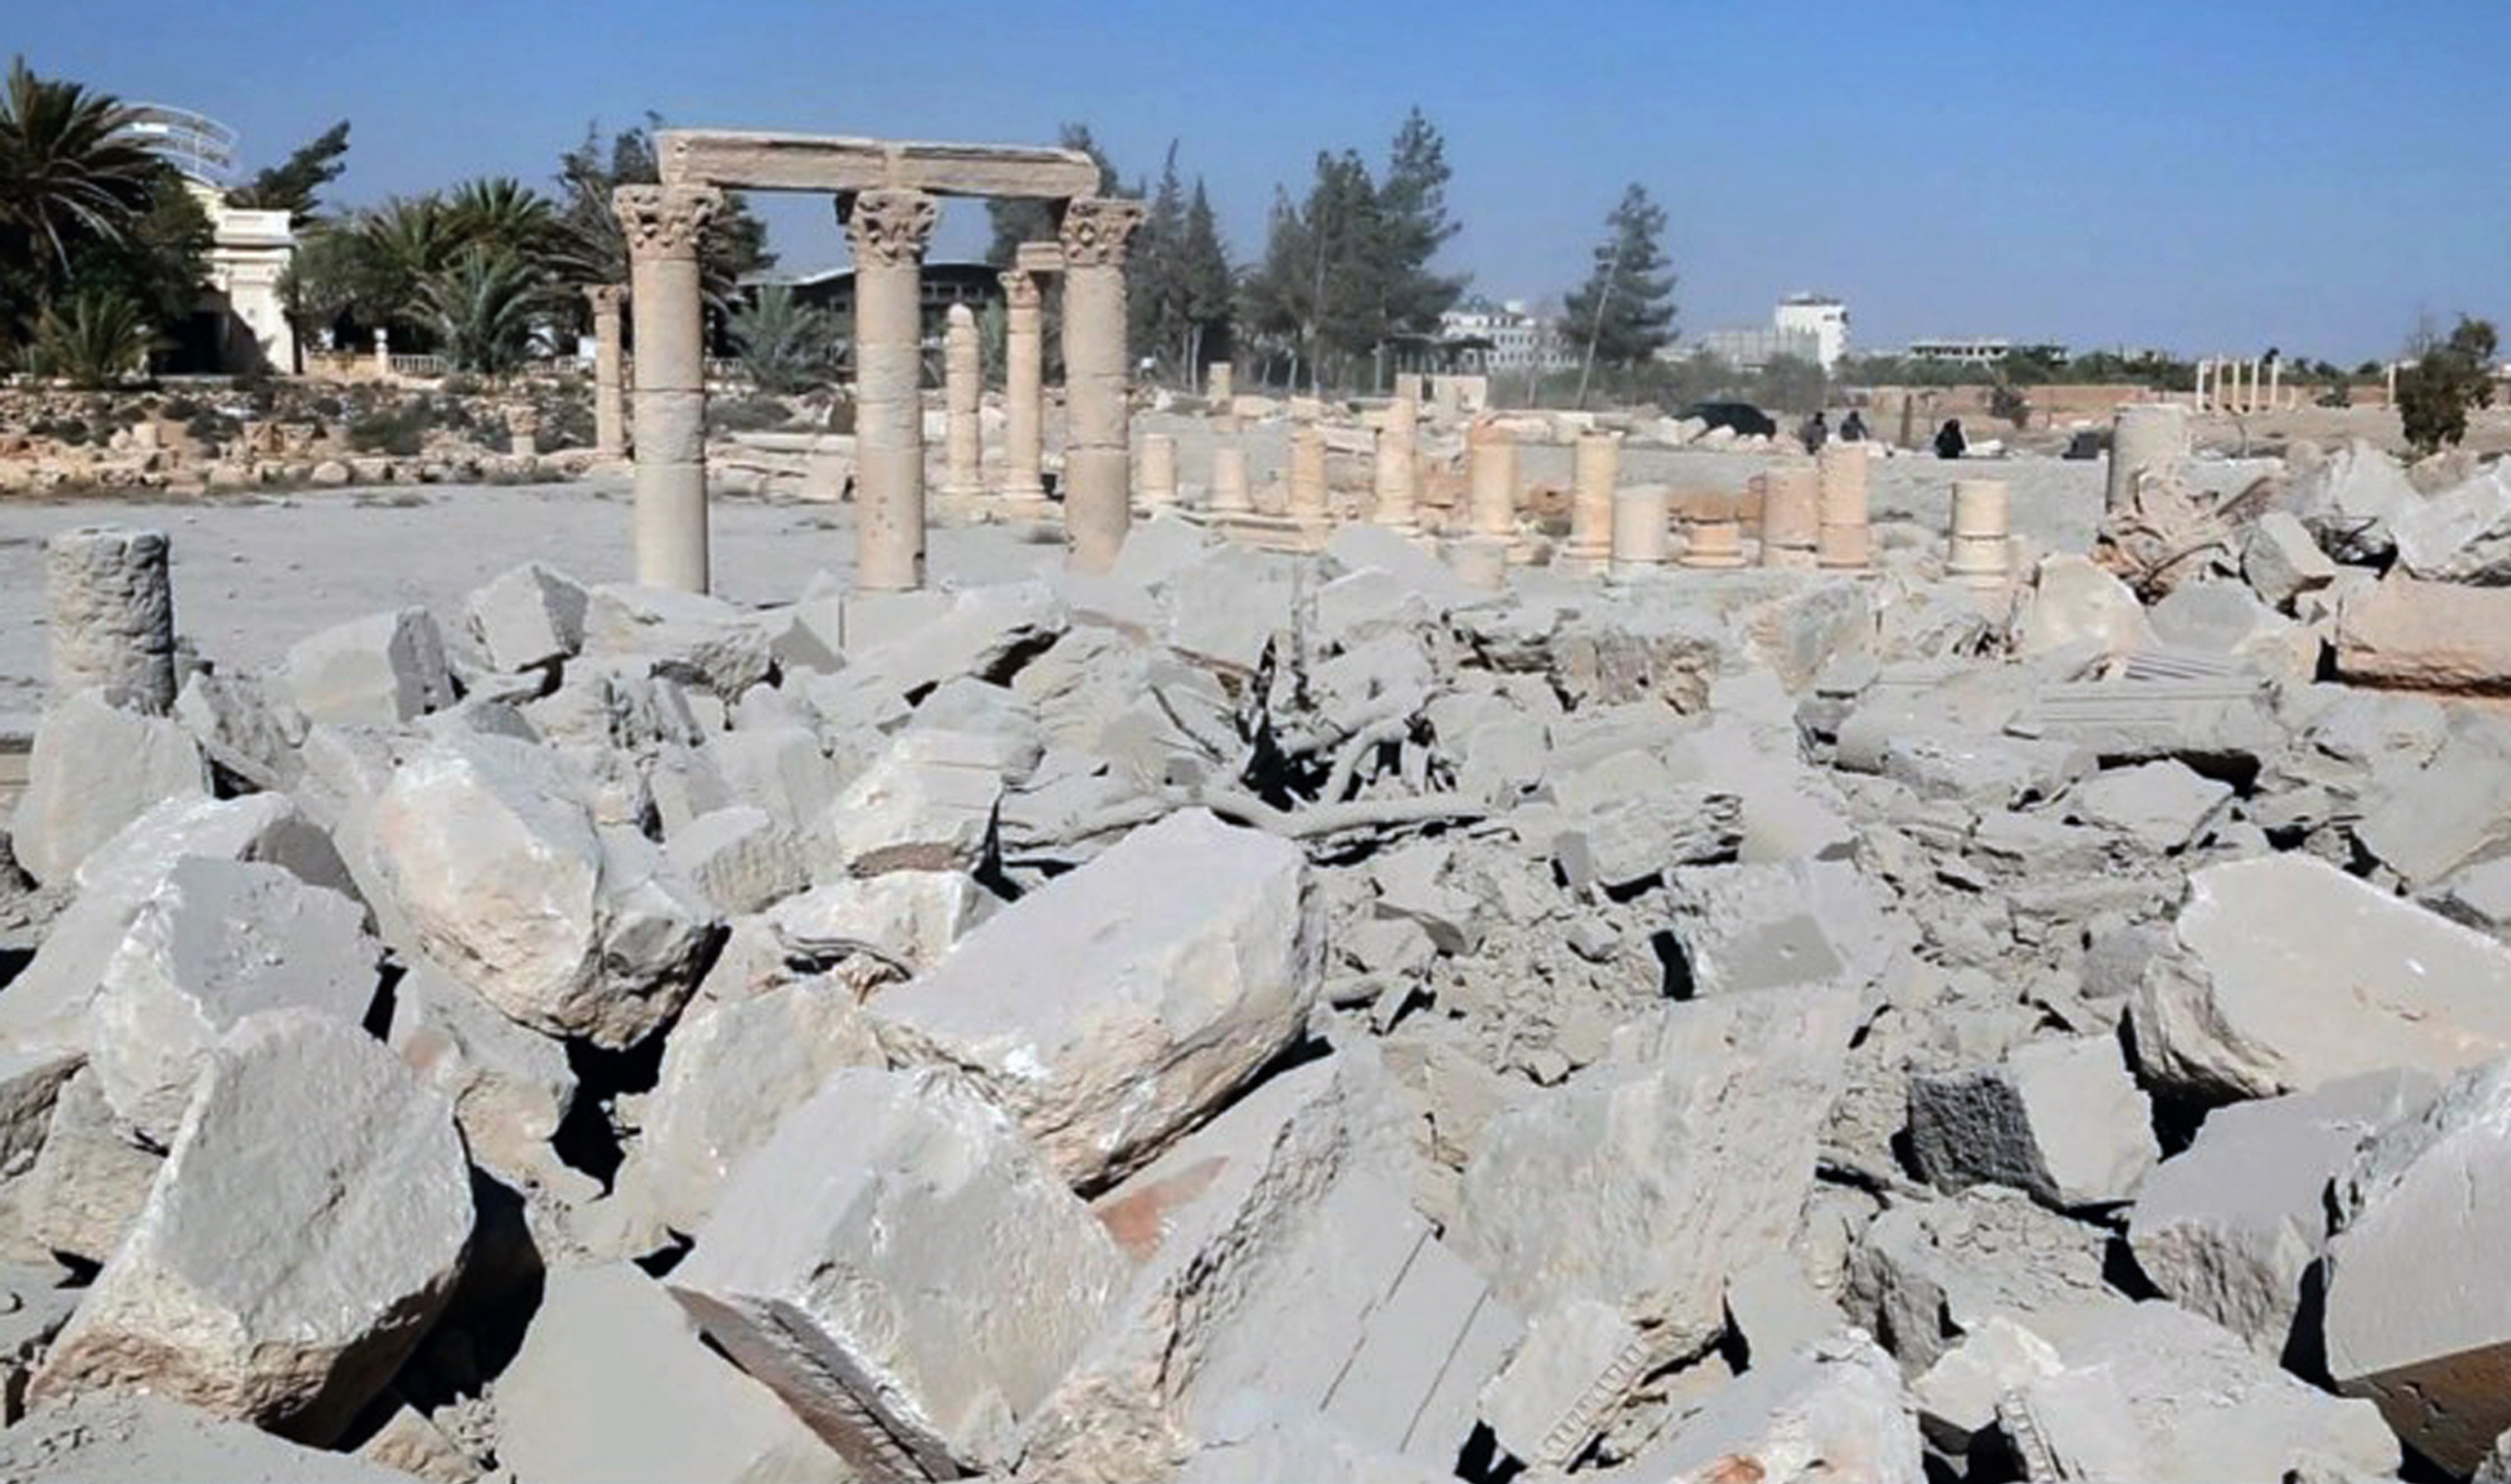 This undated photo released on Aug. 25, 2015 on a social media site used by ISIS militants shows the demolished 2,000-year-old temple of Baalshamin in Palmyra, Syria.